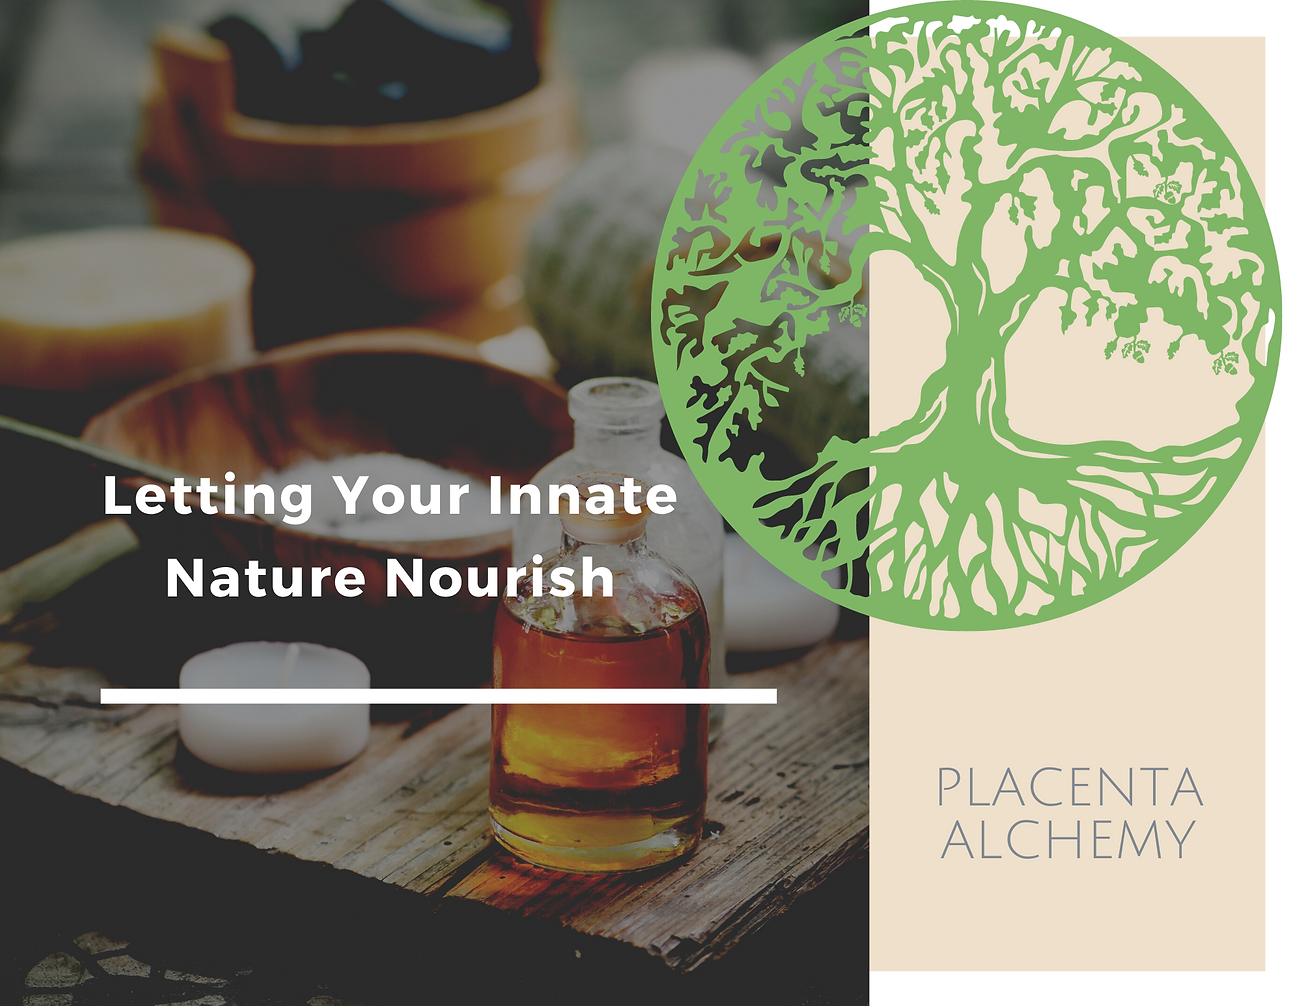 Let Nature nourish you back to wellness